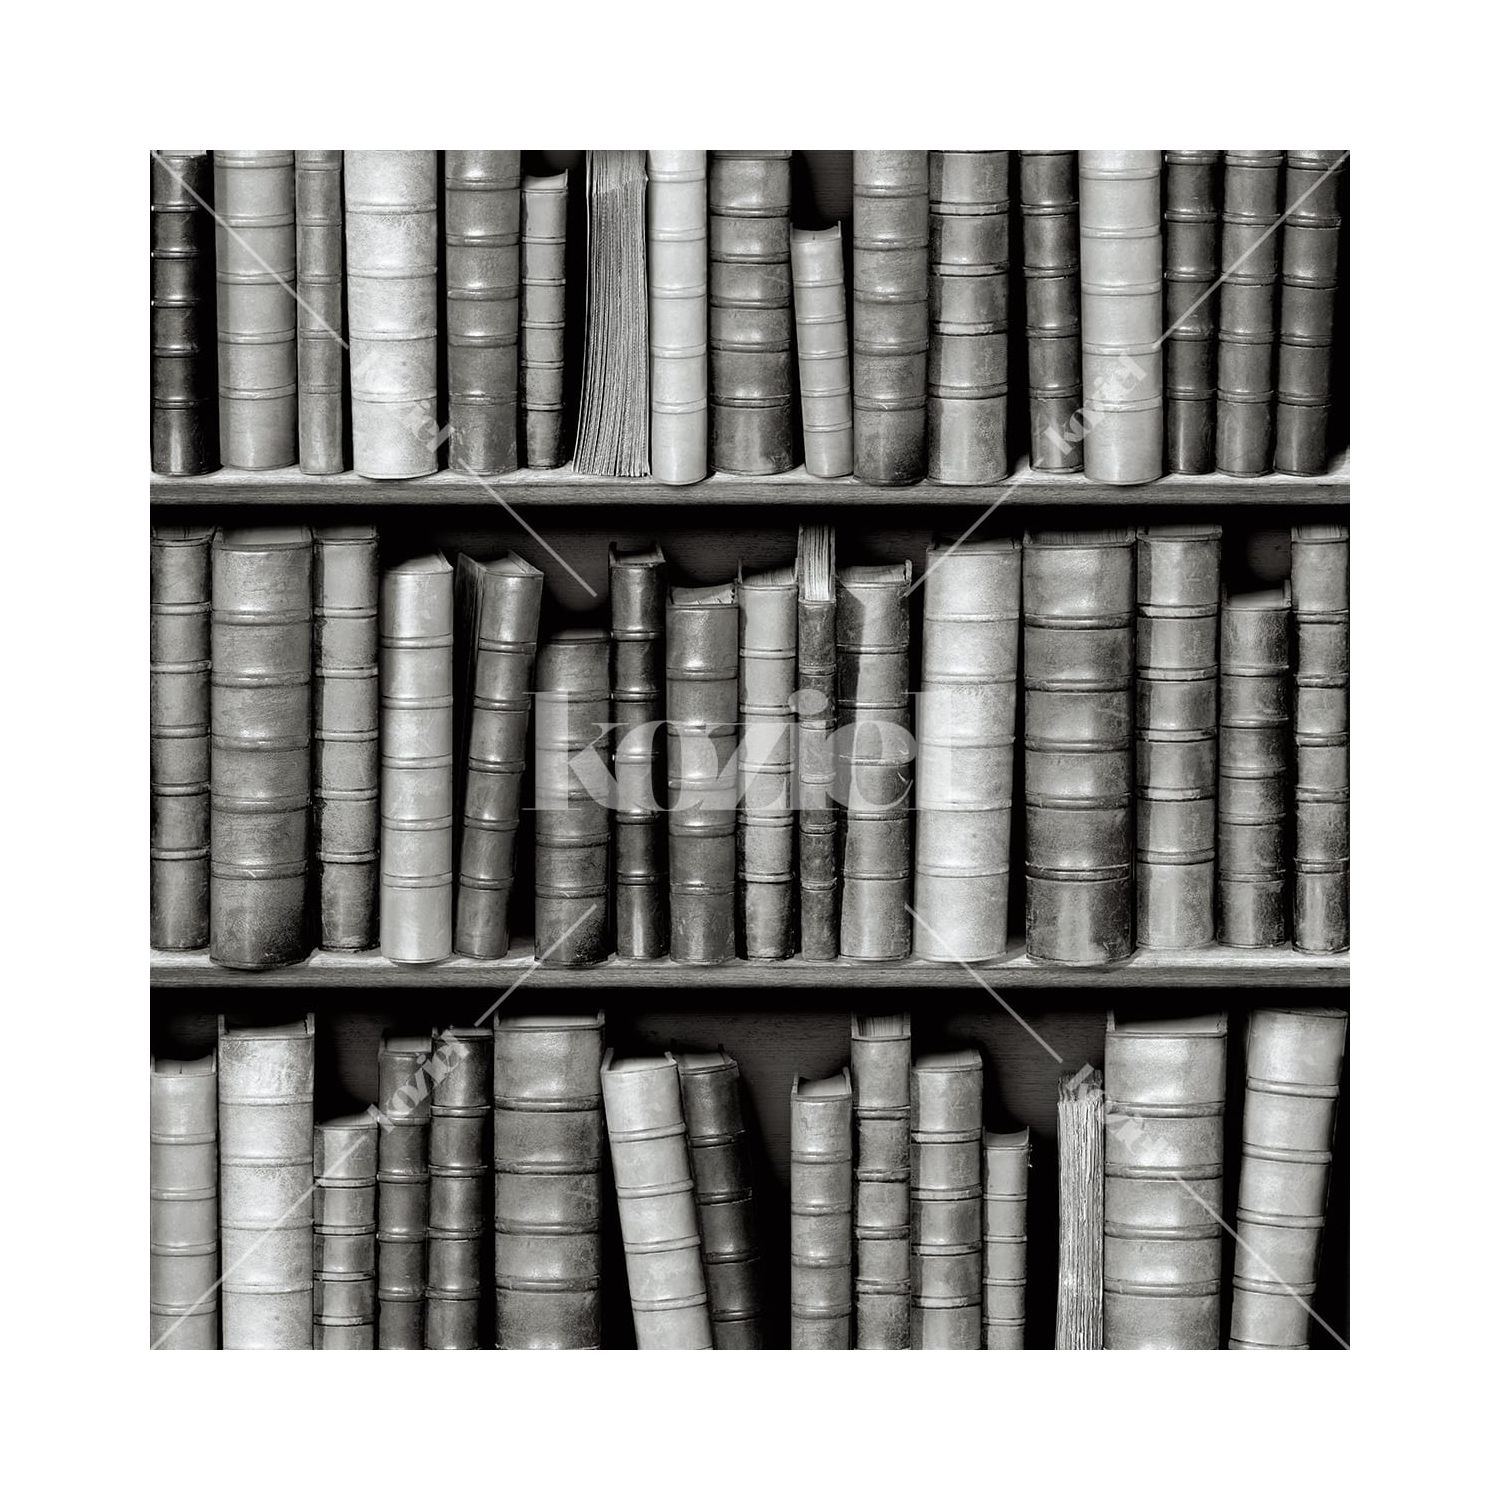 Black And White Bookshelves Wallpaper